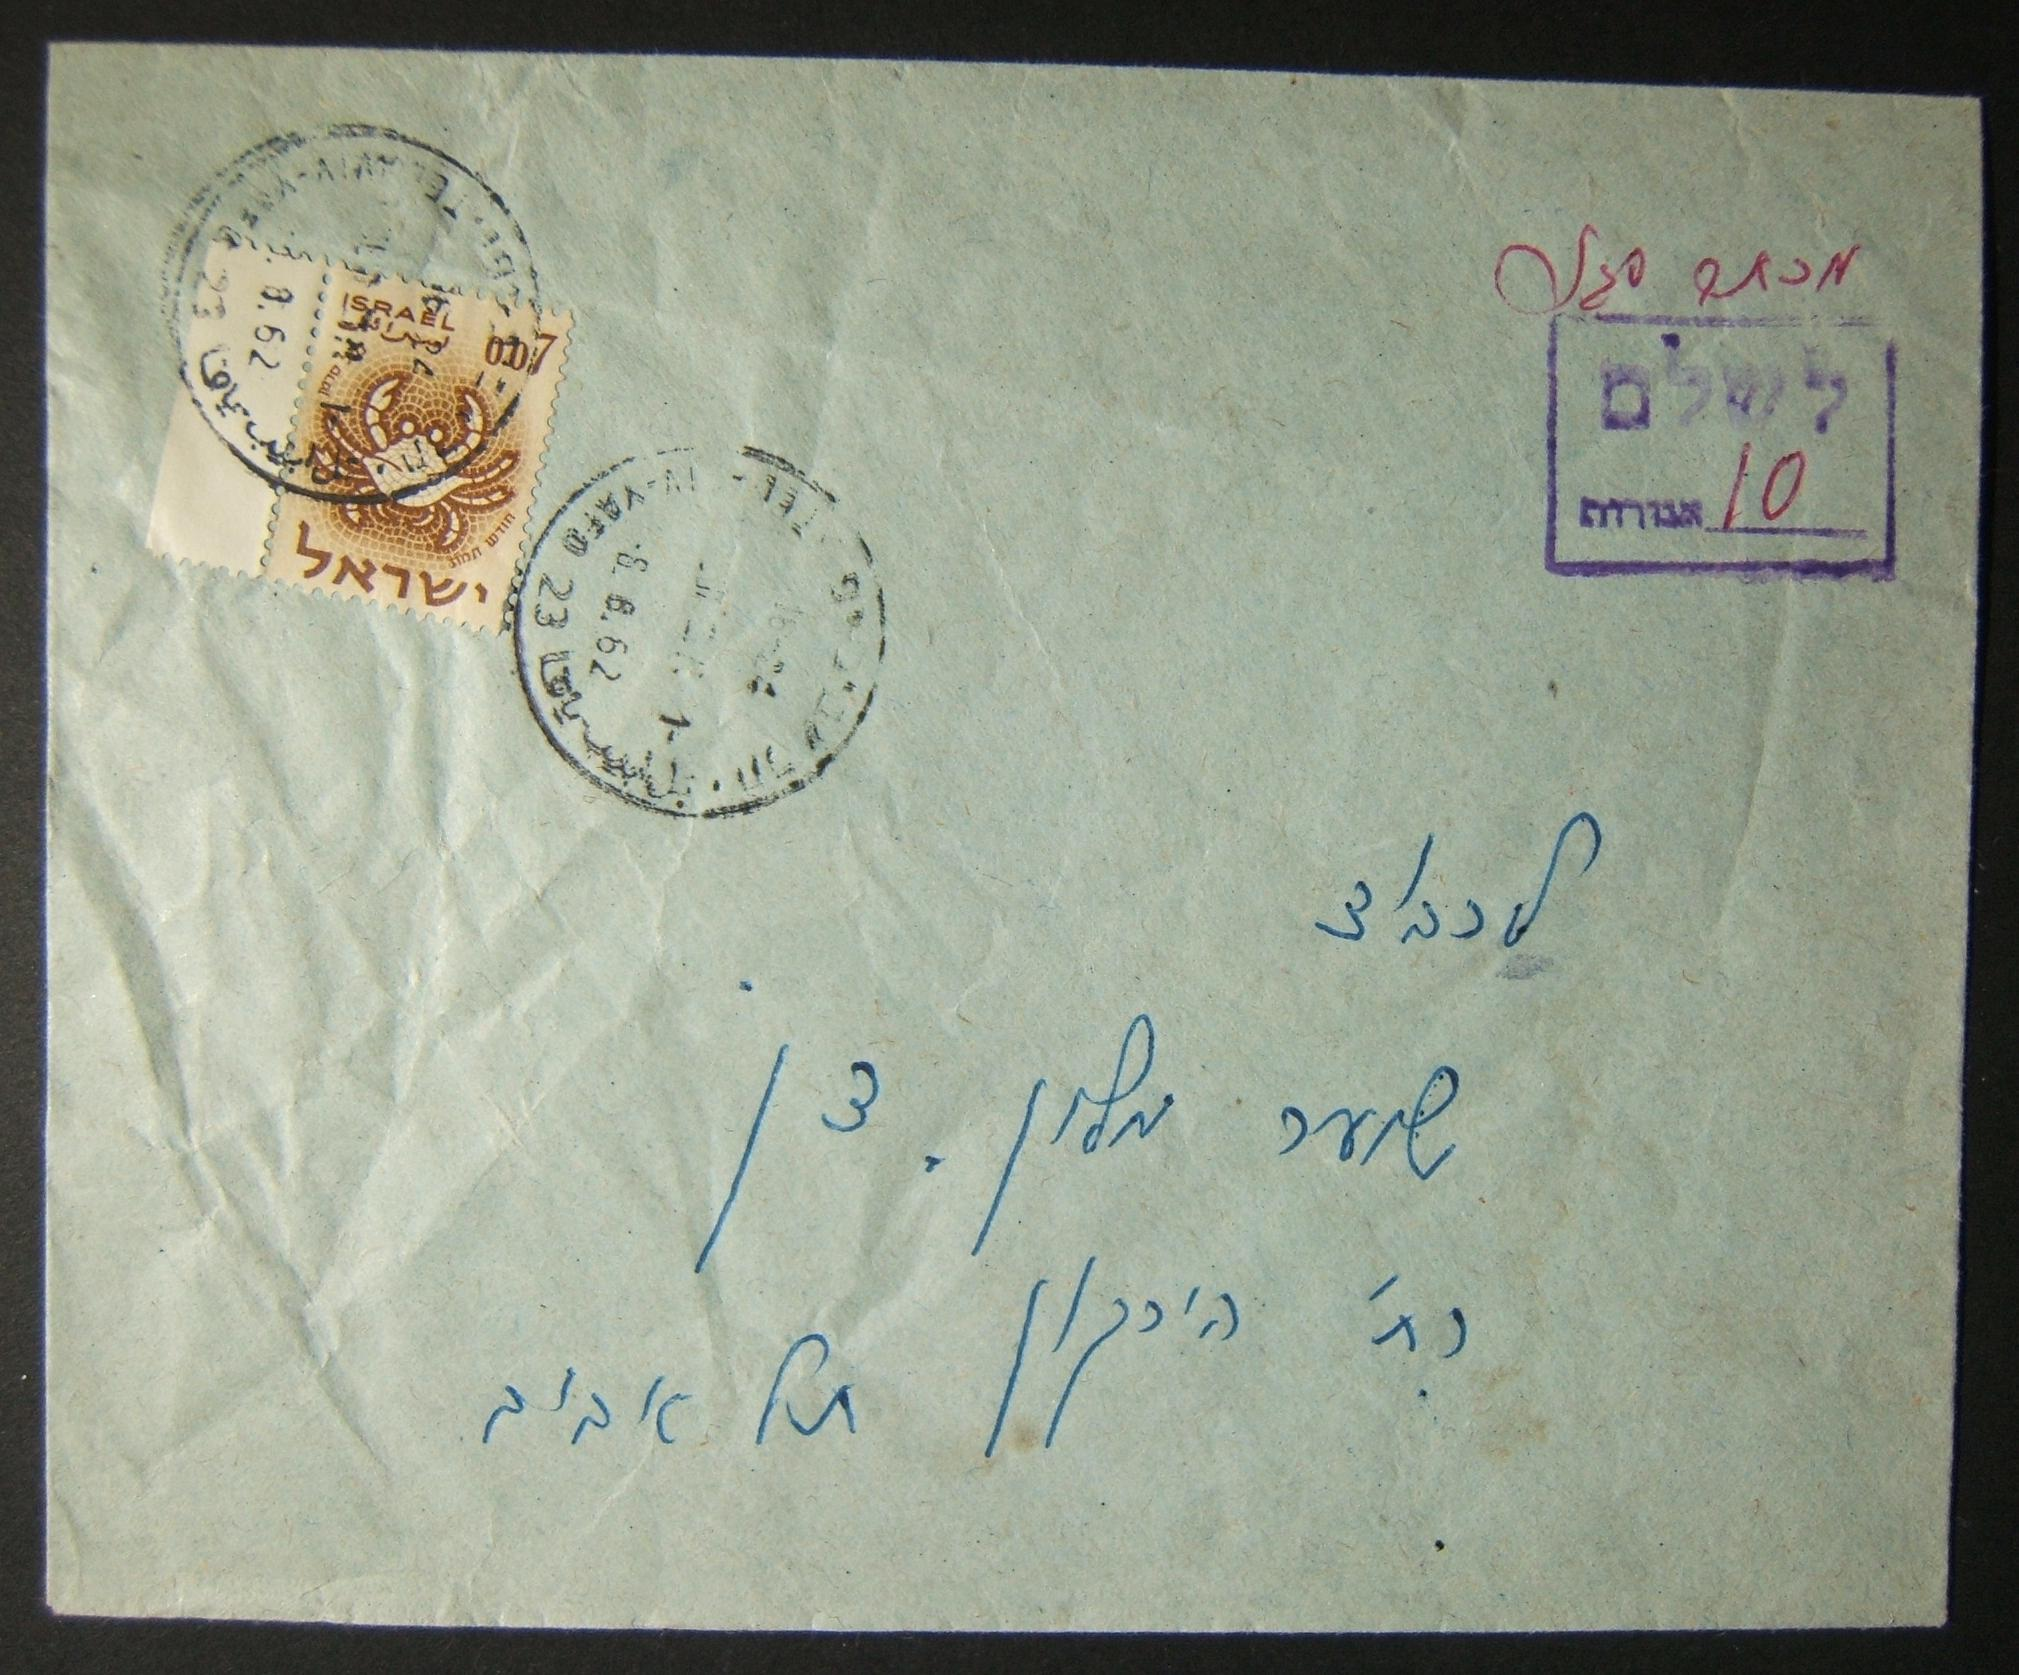 1962 Tel Aviv mail underfranked as printed matter but rejected by post office & taxed